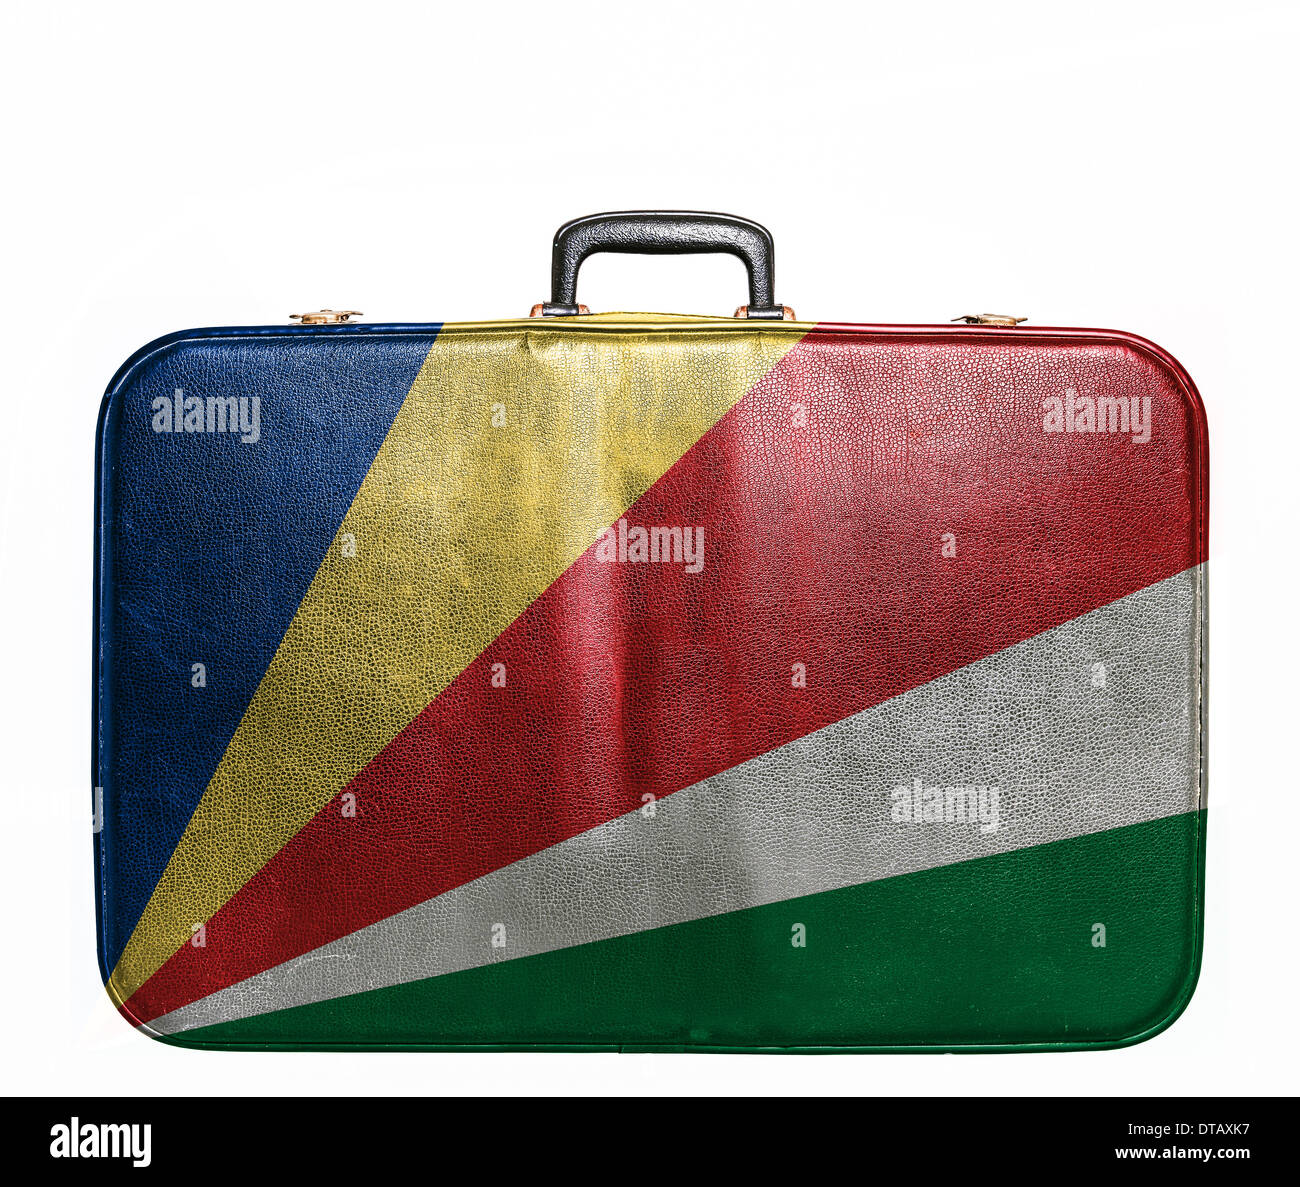 Vintage travel bag with flag of Seychelles - Stock Image